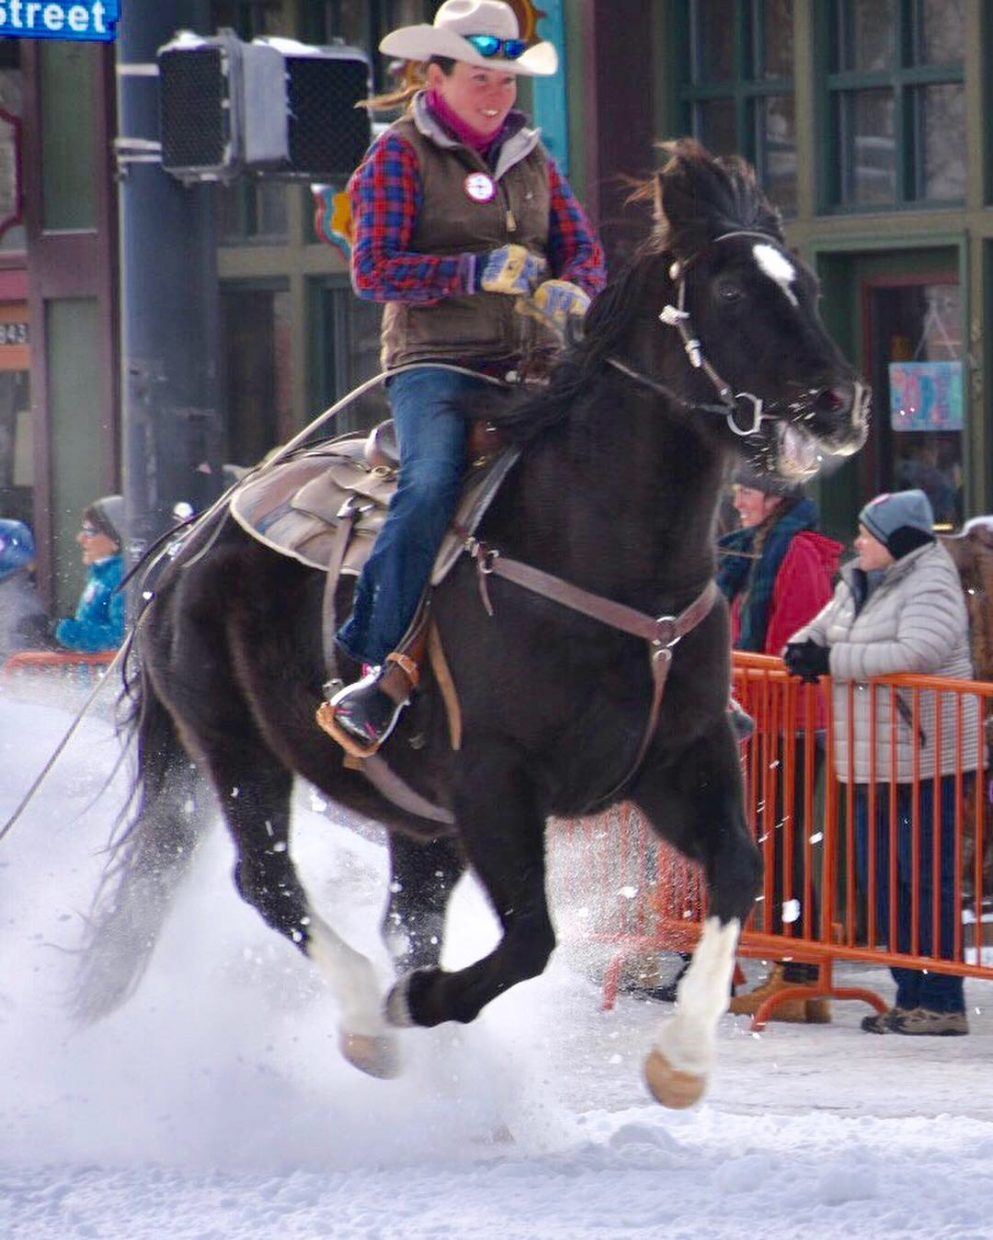 A cowgirl rides her horse down a snow-covered Lincoln Avenue during the 106th Winter Carnival.